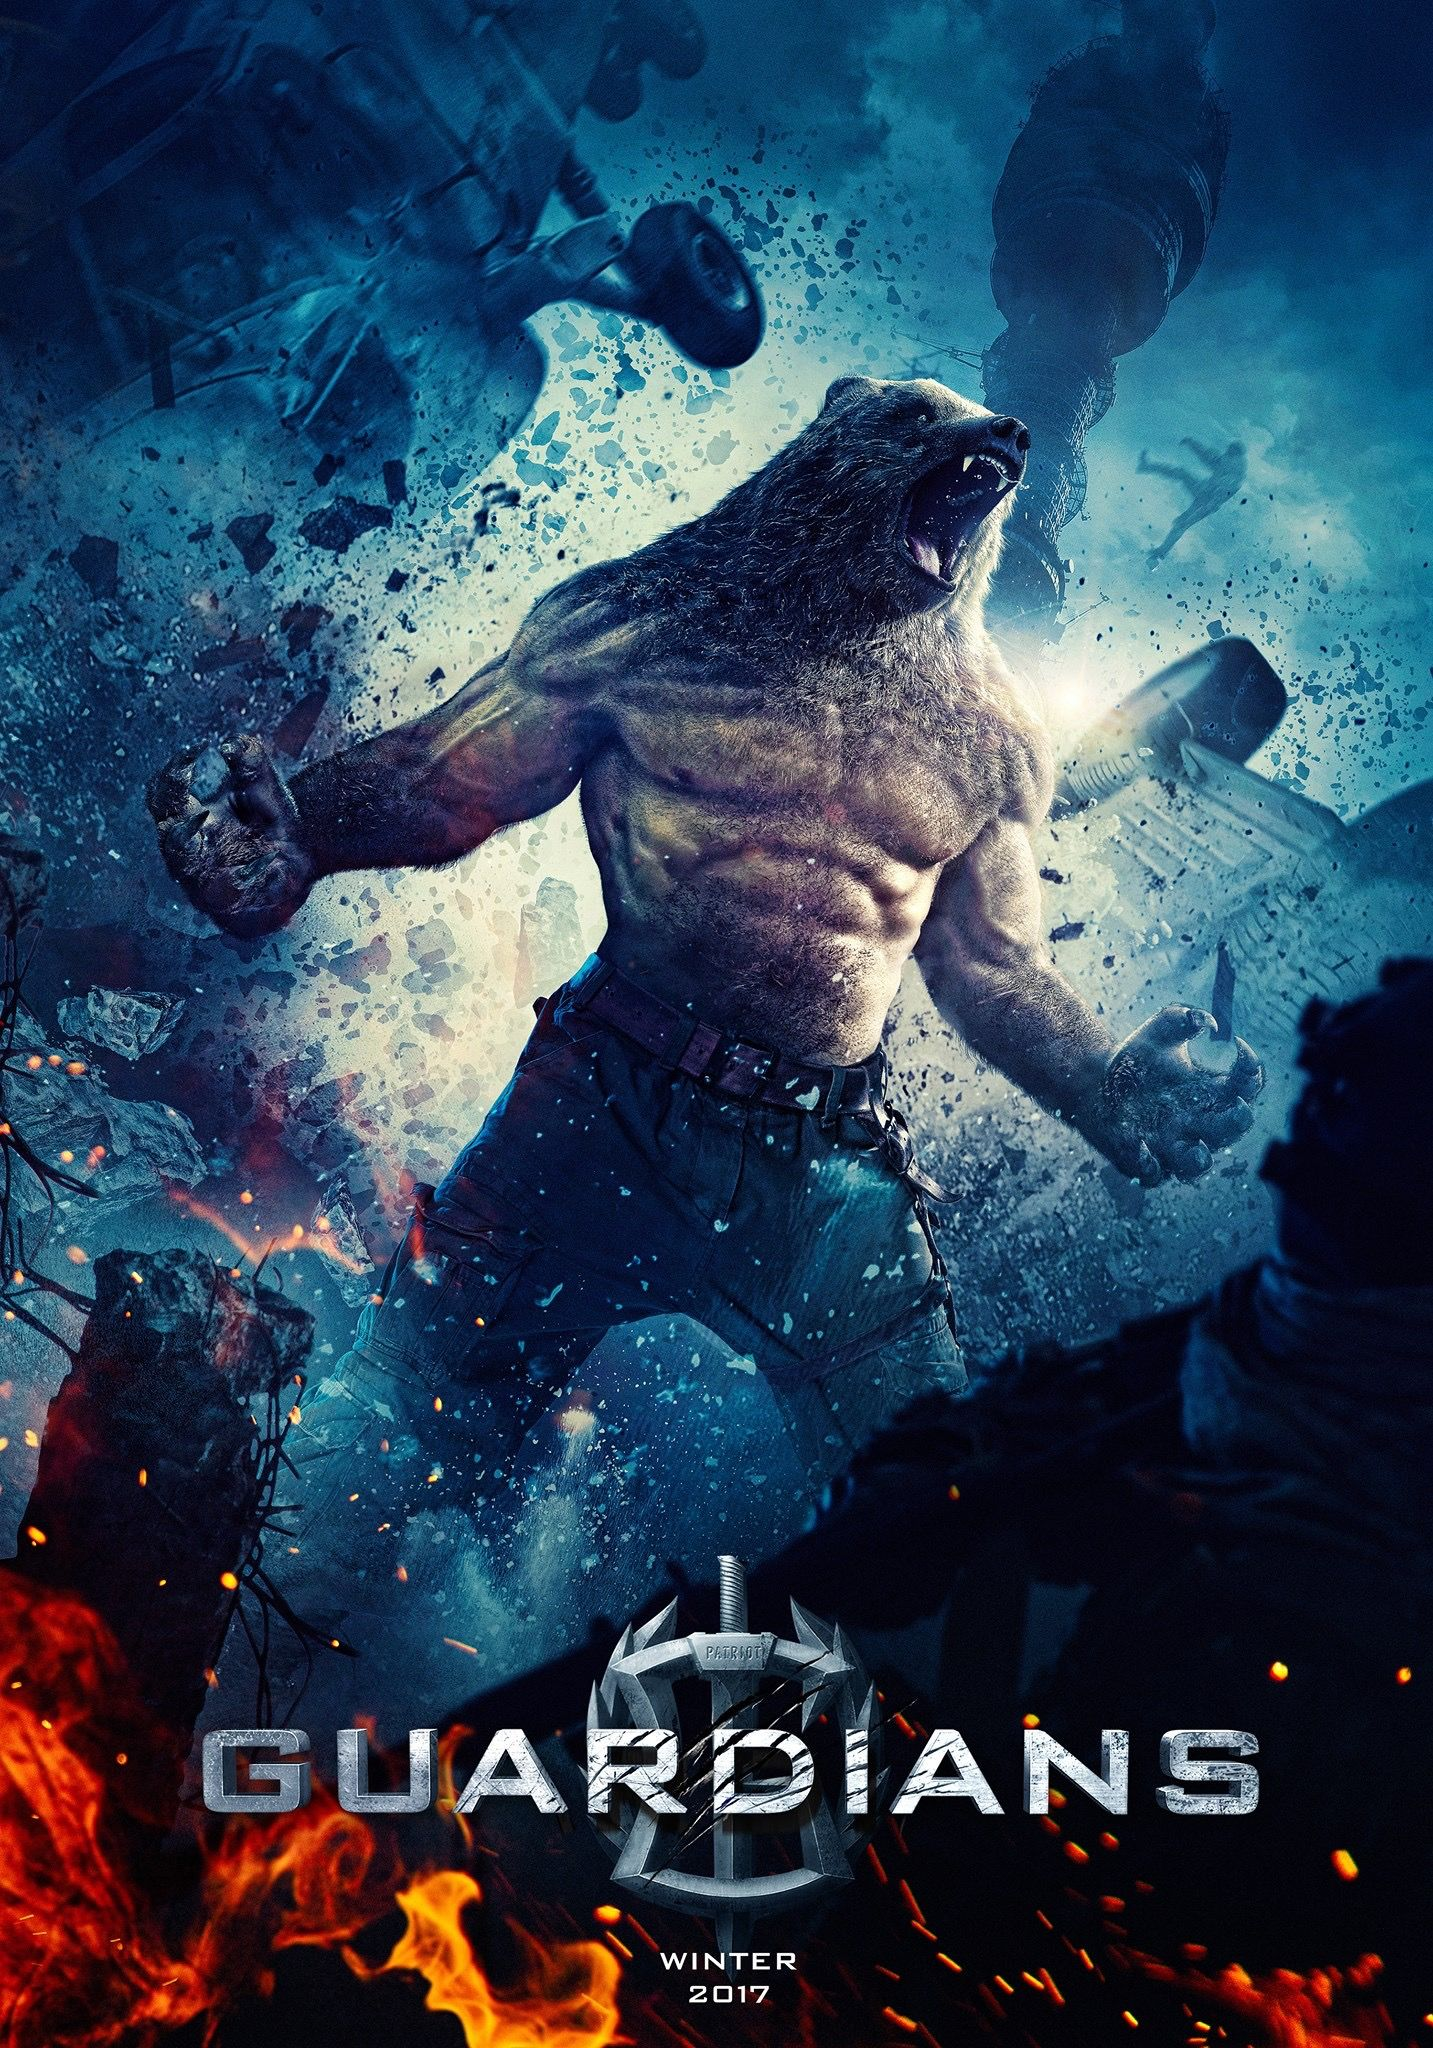 Guardians Russian Movie Poster Filmes Completos Online Gratis